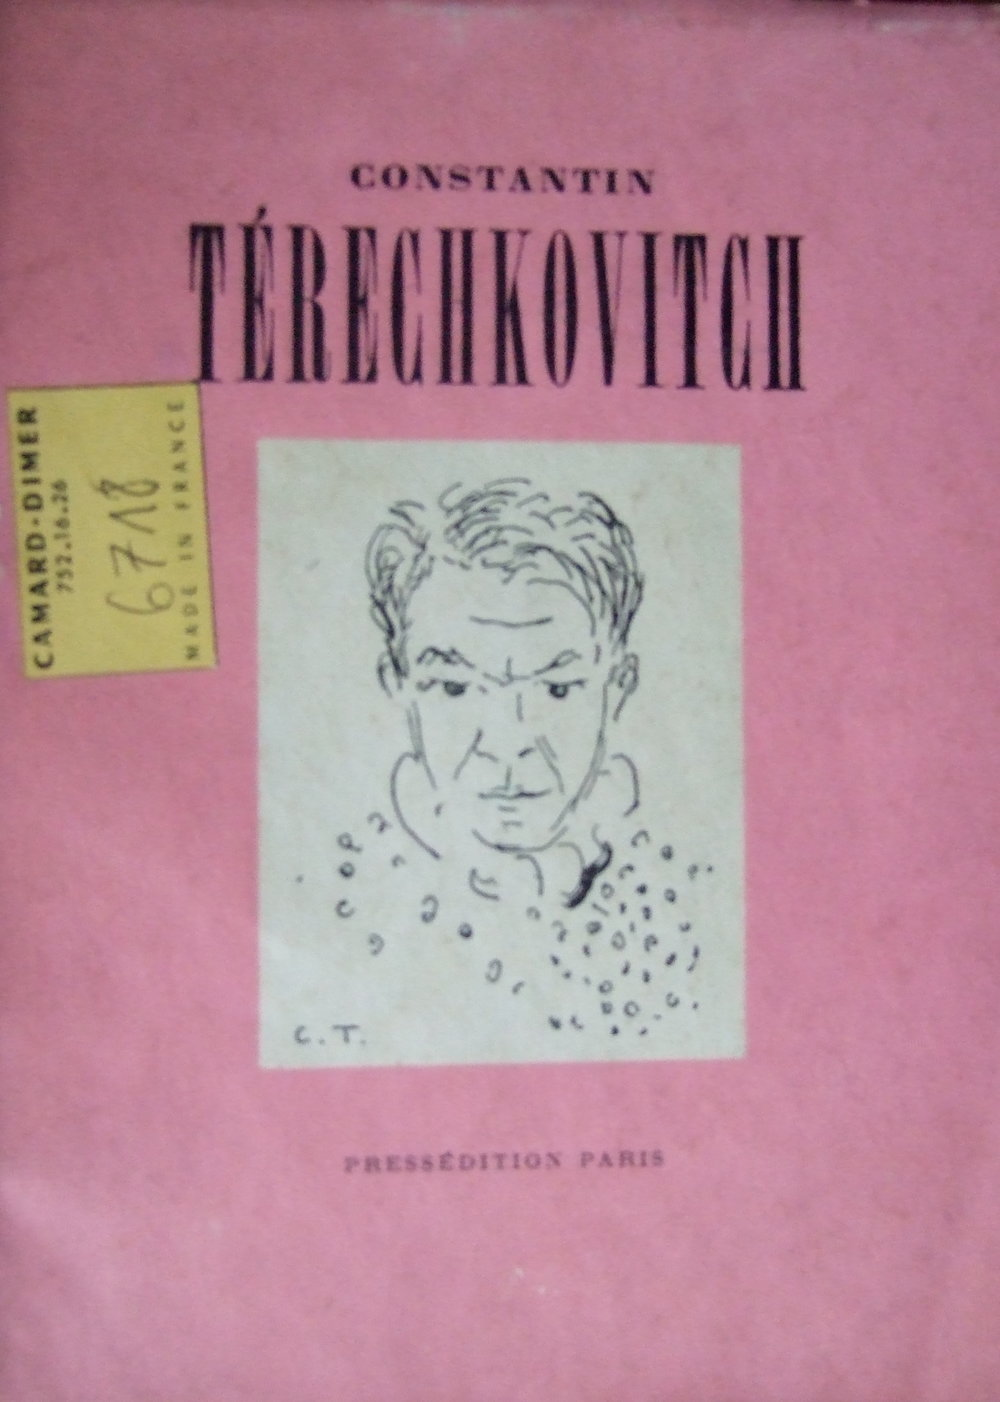 Terechkovich Constantin by Maximilien Gauthier